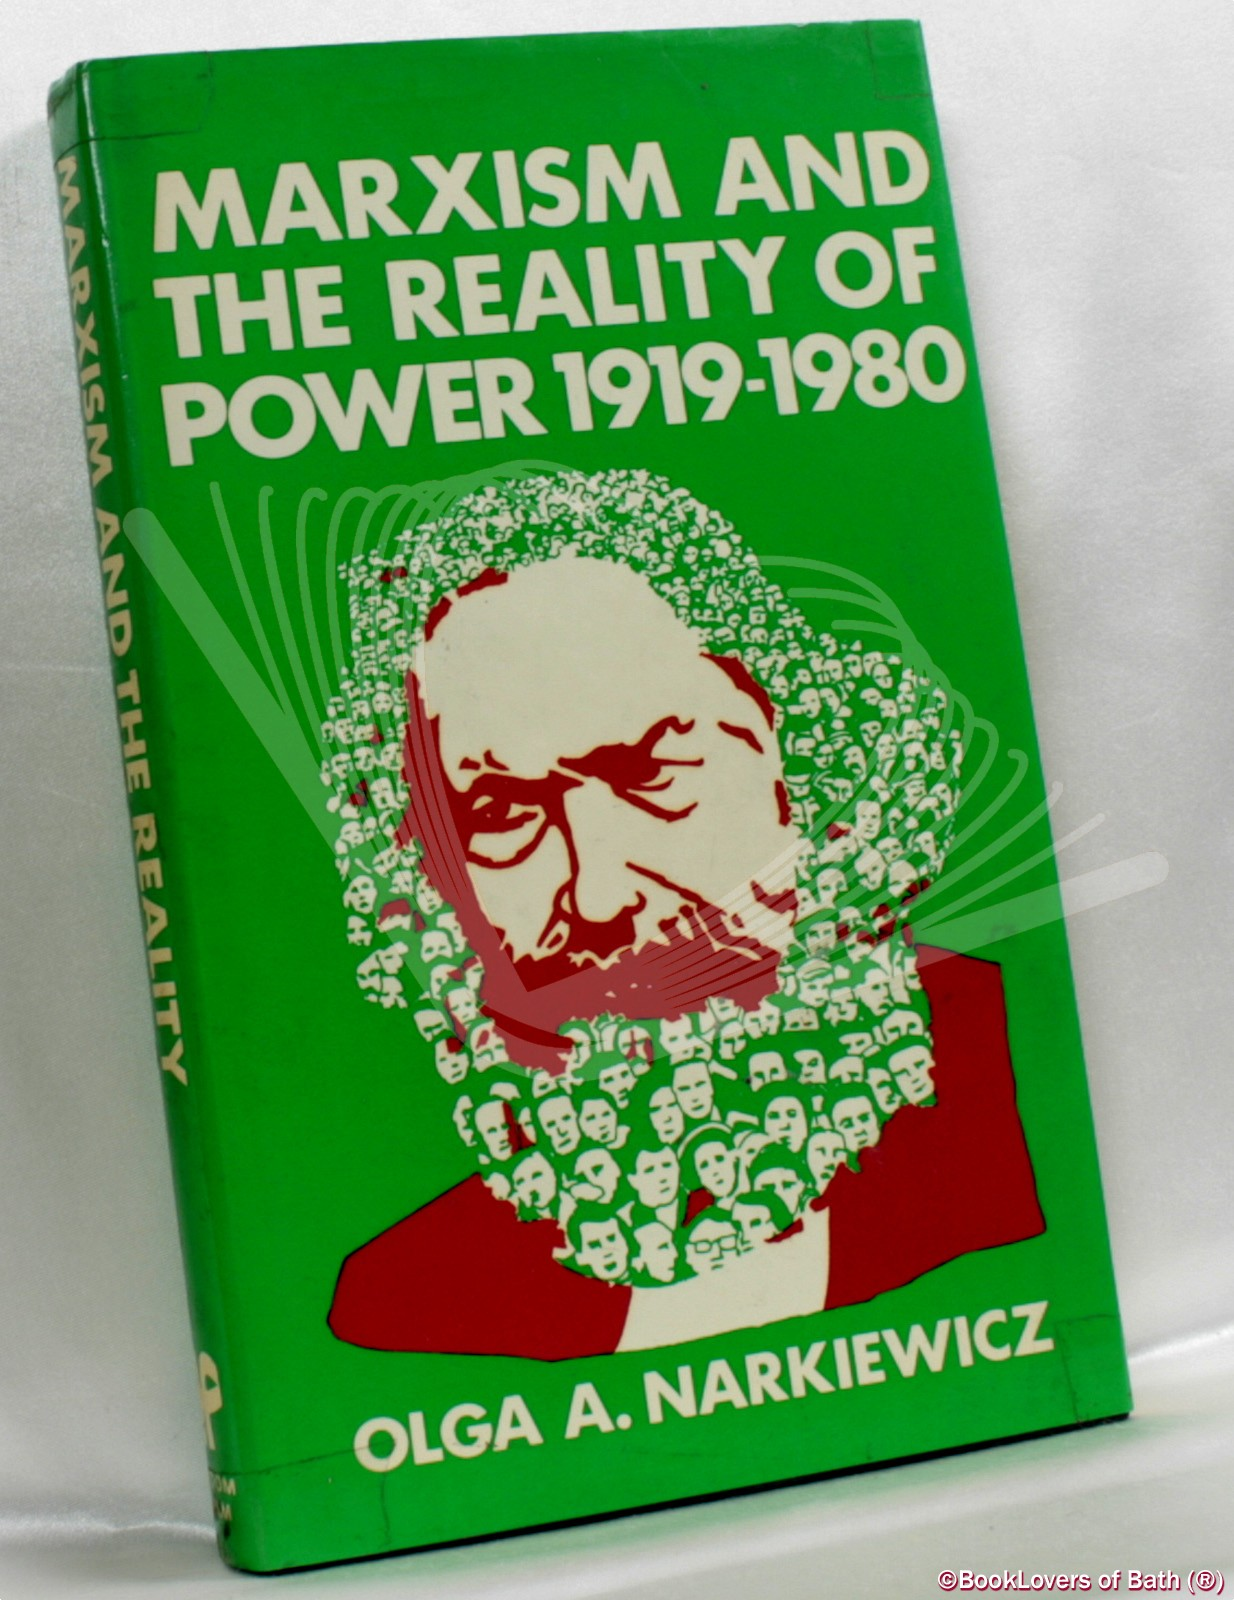 Marxism and the Reality of Power 1919-1980 - Olga A. [Anna] Narkiewicz